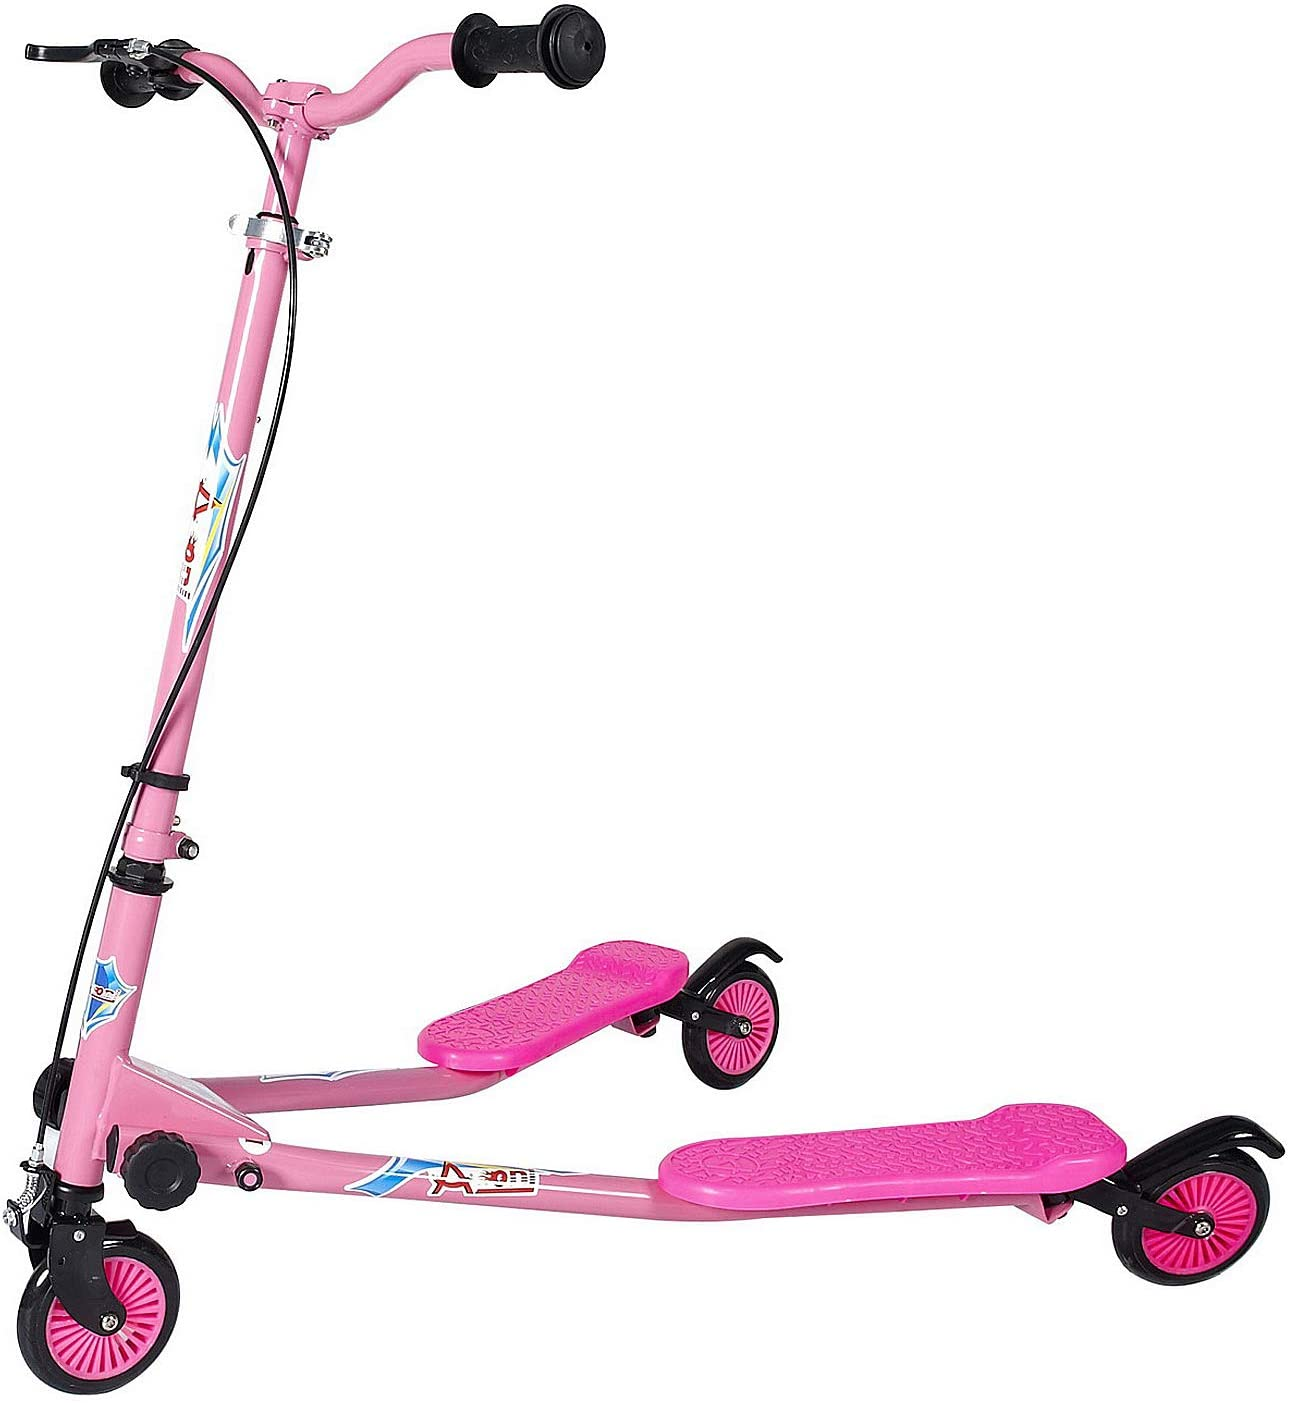 AODI Kids Foldable Swing Scooter Adjustable Height Kick Speeder Wiggle Scooters Self Push Drift for Boys Girl 3 Years Old and Up